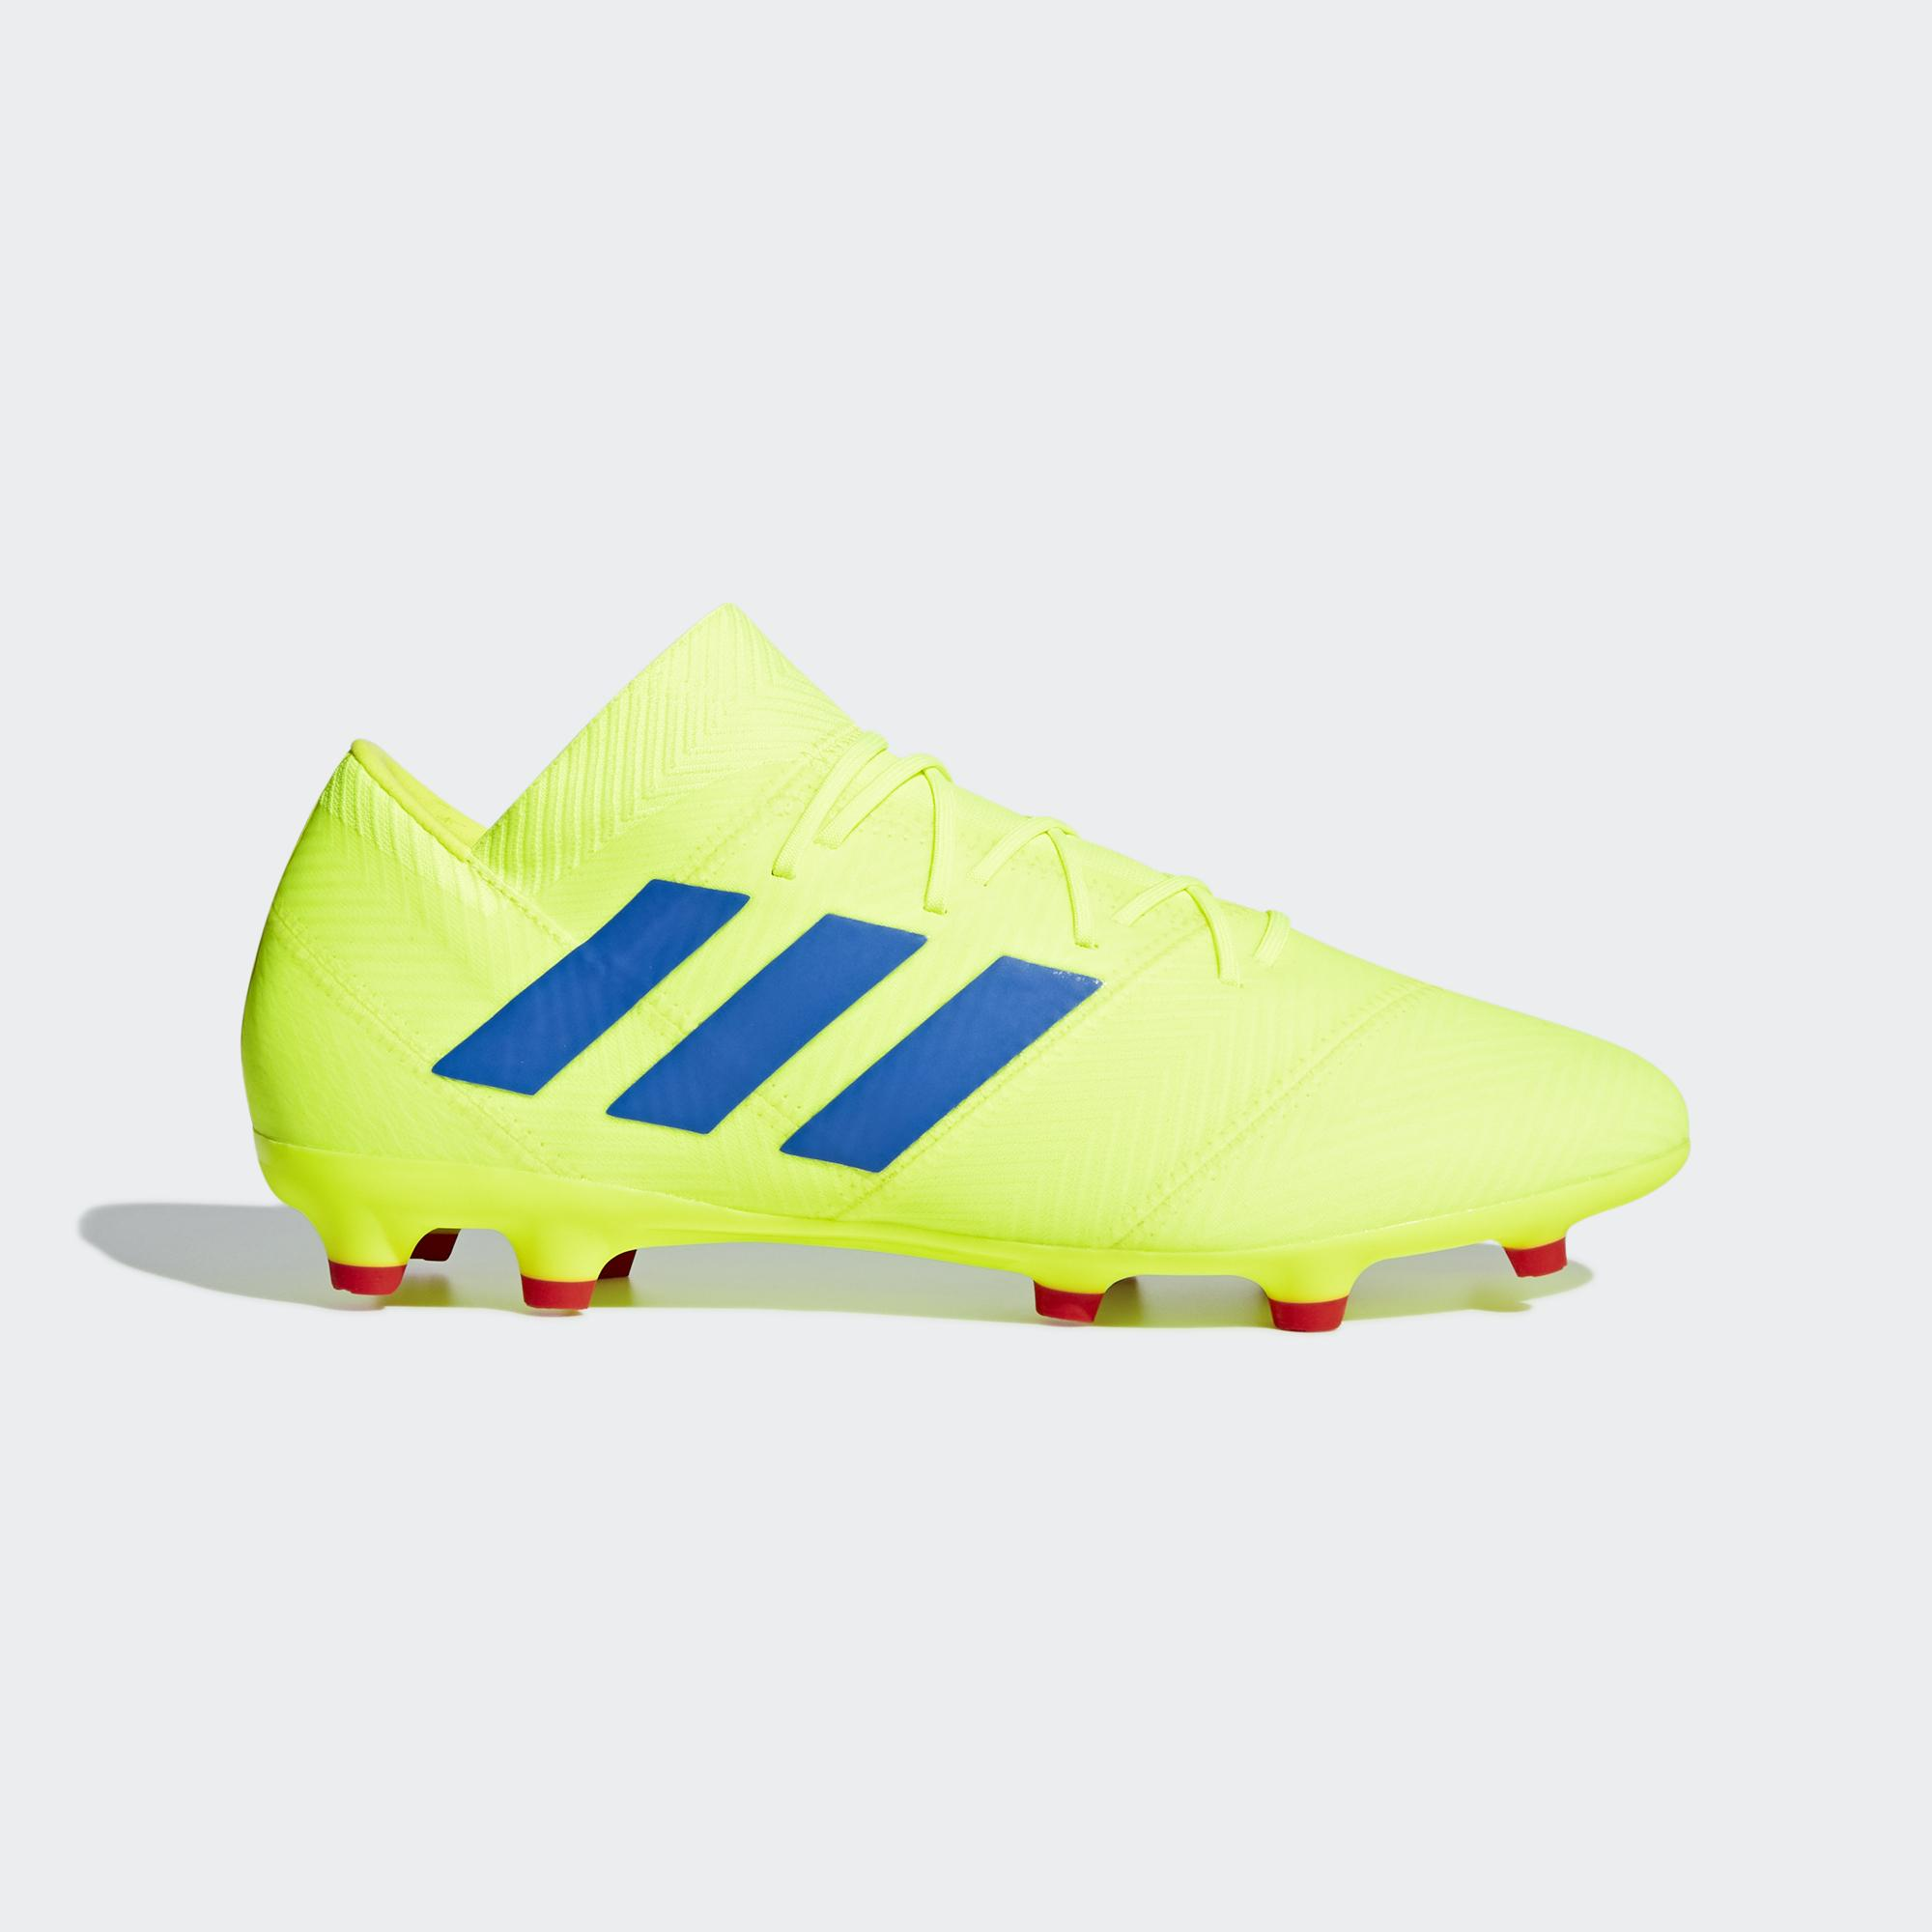 Adidas Football Shoes NEMEZIZ 18.2 FG